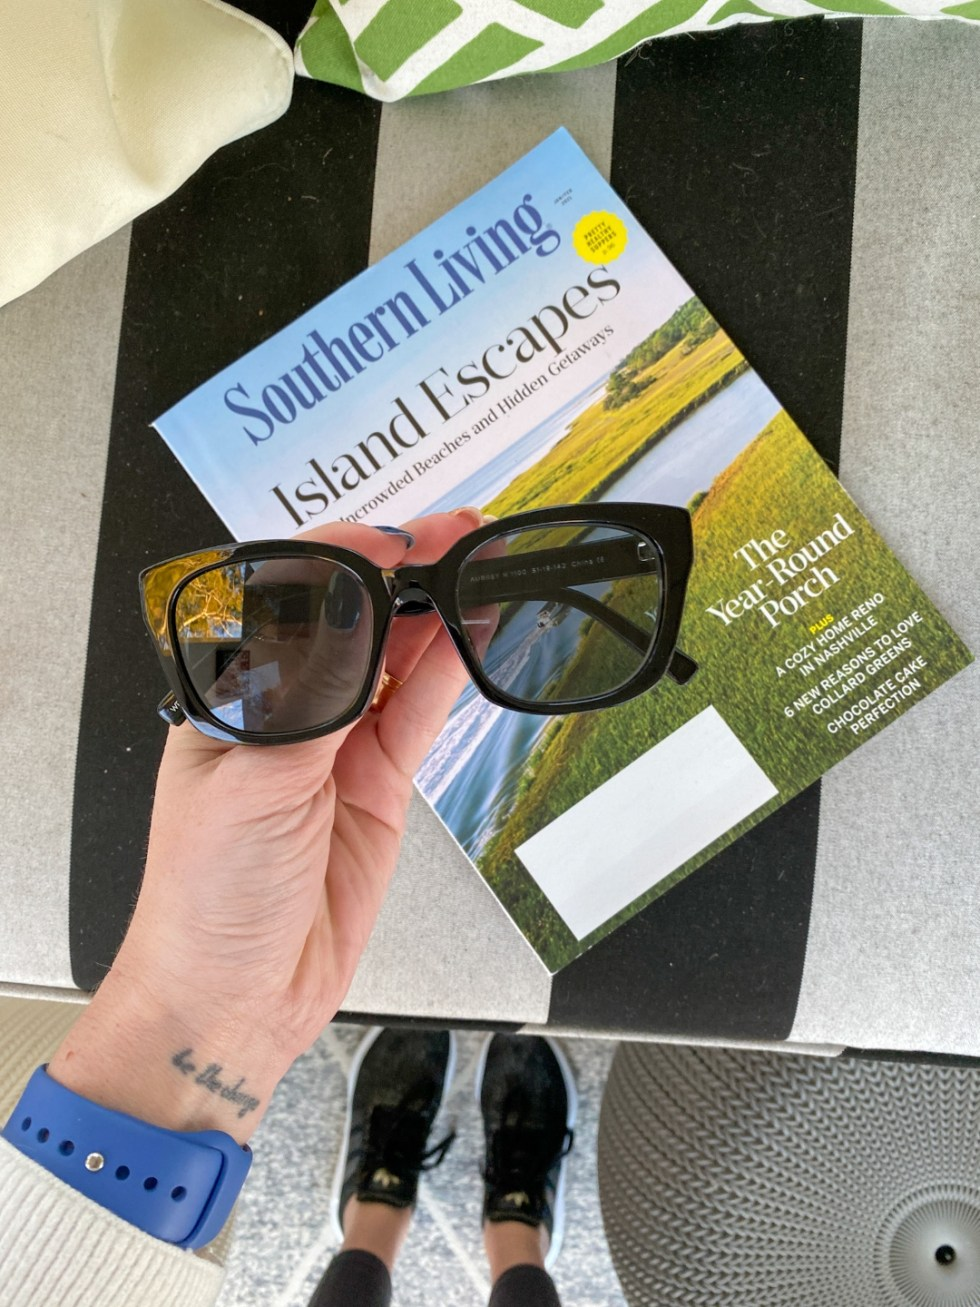 See With Style: Warby Parker Eye Glasses - I'm Fixin' To - @imfixintoblog |Warby Parker Eye Glasses by popular NC fashion blog, I'm Fixin' To: image of a pair of Warby Parker sunglasses resting on top of a Southern Living magazine.